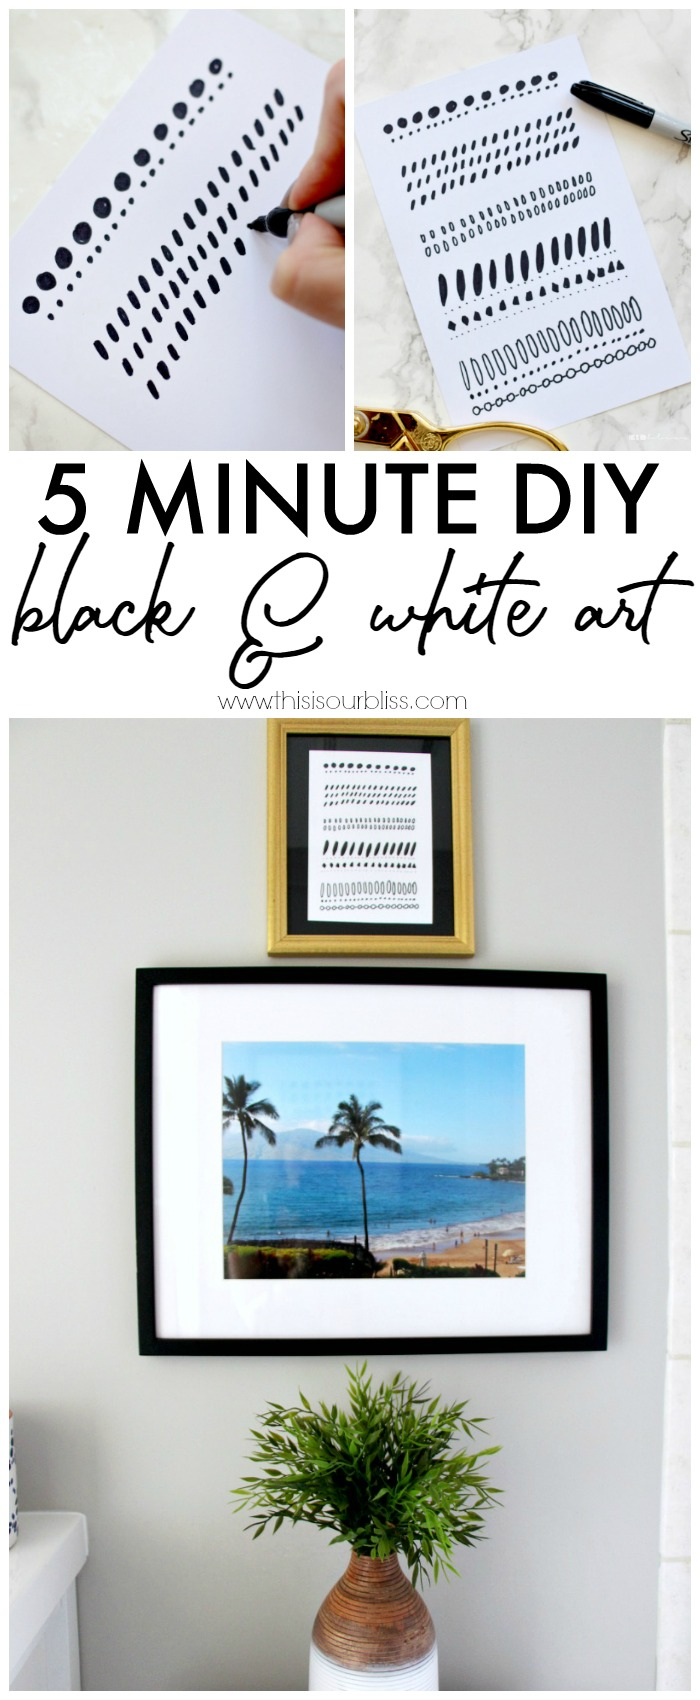 5 Minute DIY Black and White Art - Basement Guest Bathroom Update